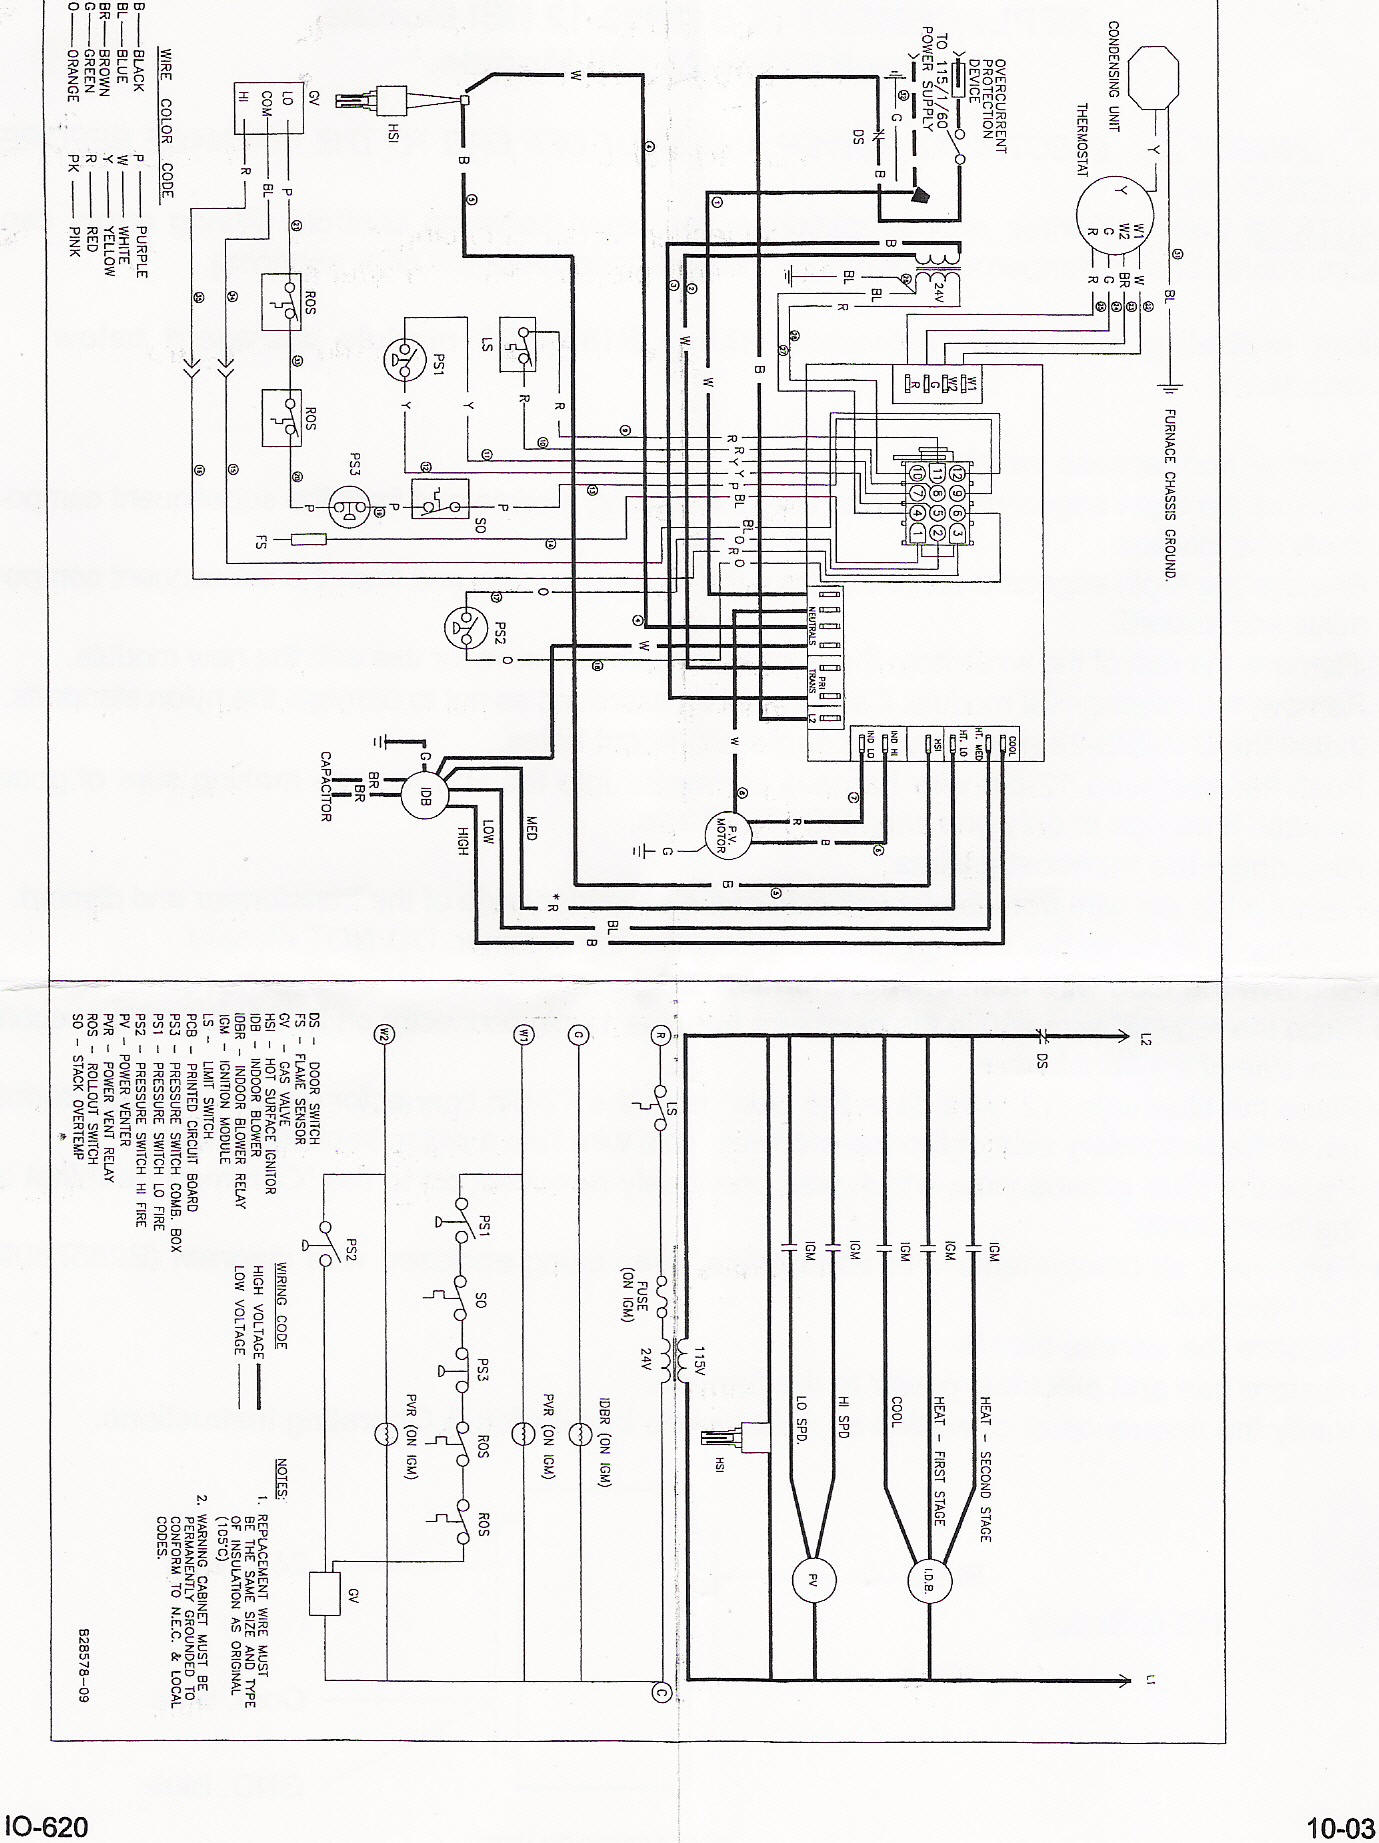 goodma2 instr goodman control board b18099 23 instructions goodman package unit heat pump wiring diagram at bakdesigns.co